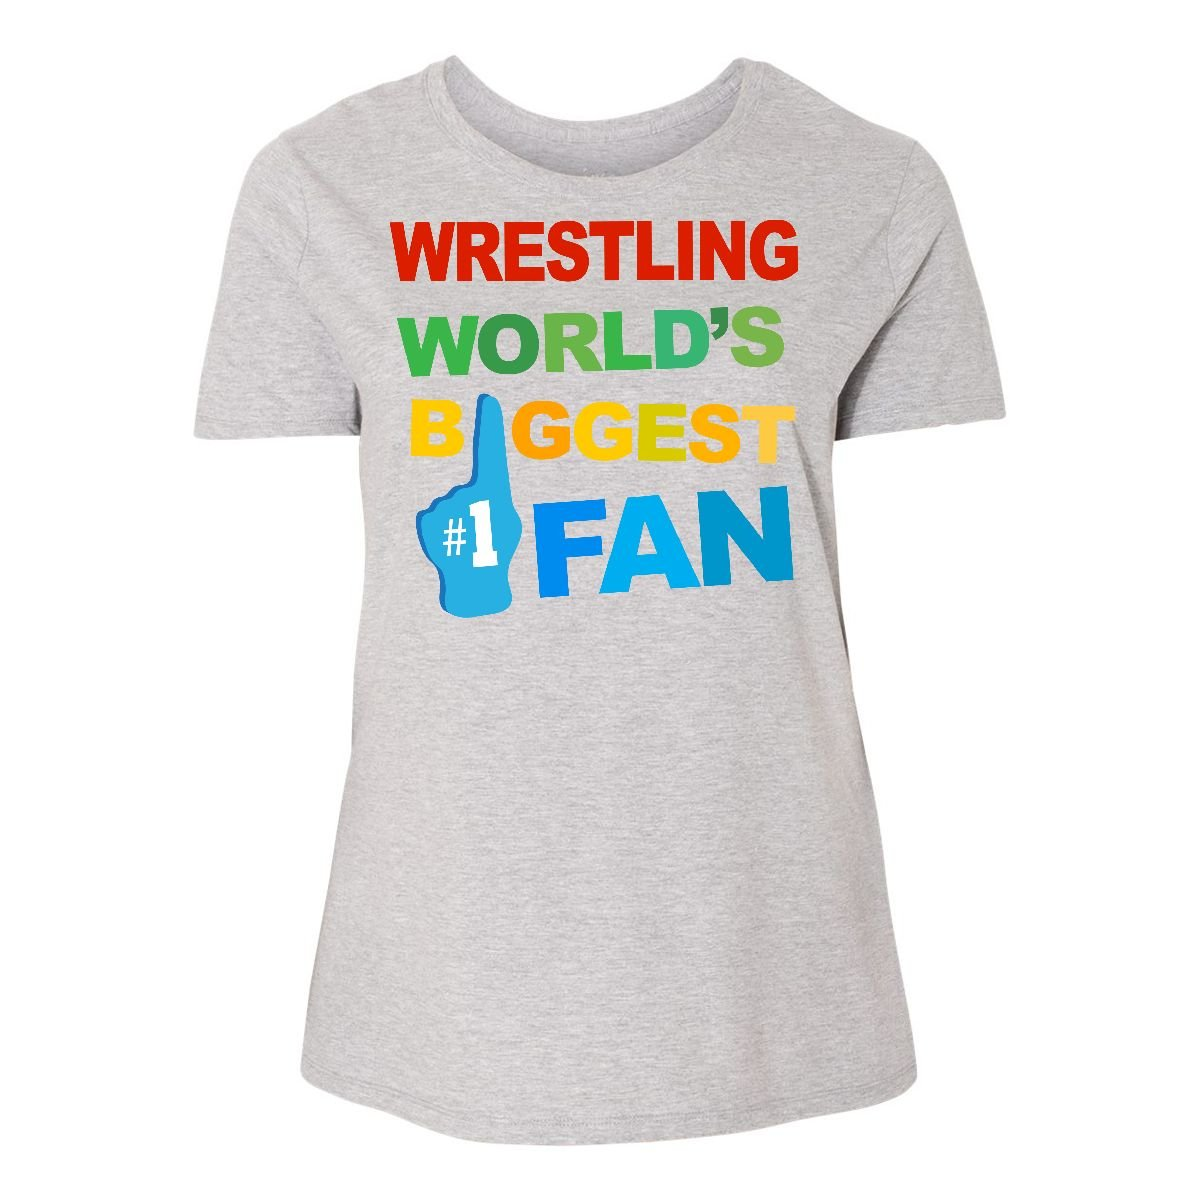 inktastic Wrestling Biggest Fan Women's Plus Size T-Shirt 4 (26/28) Steel Grey by inktastic